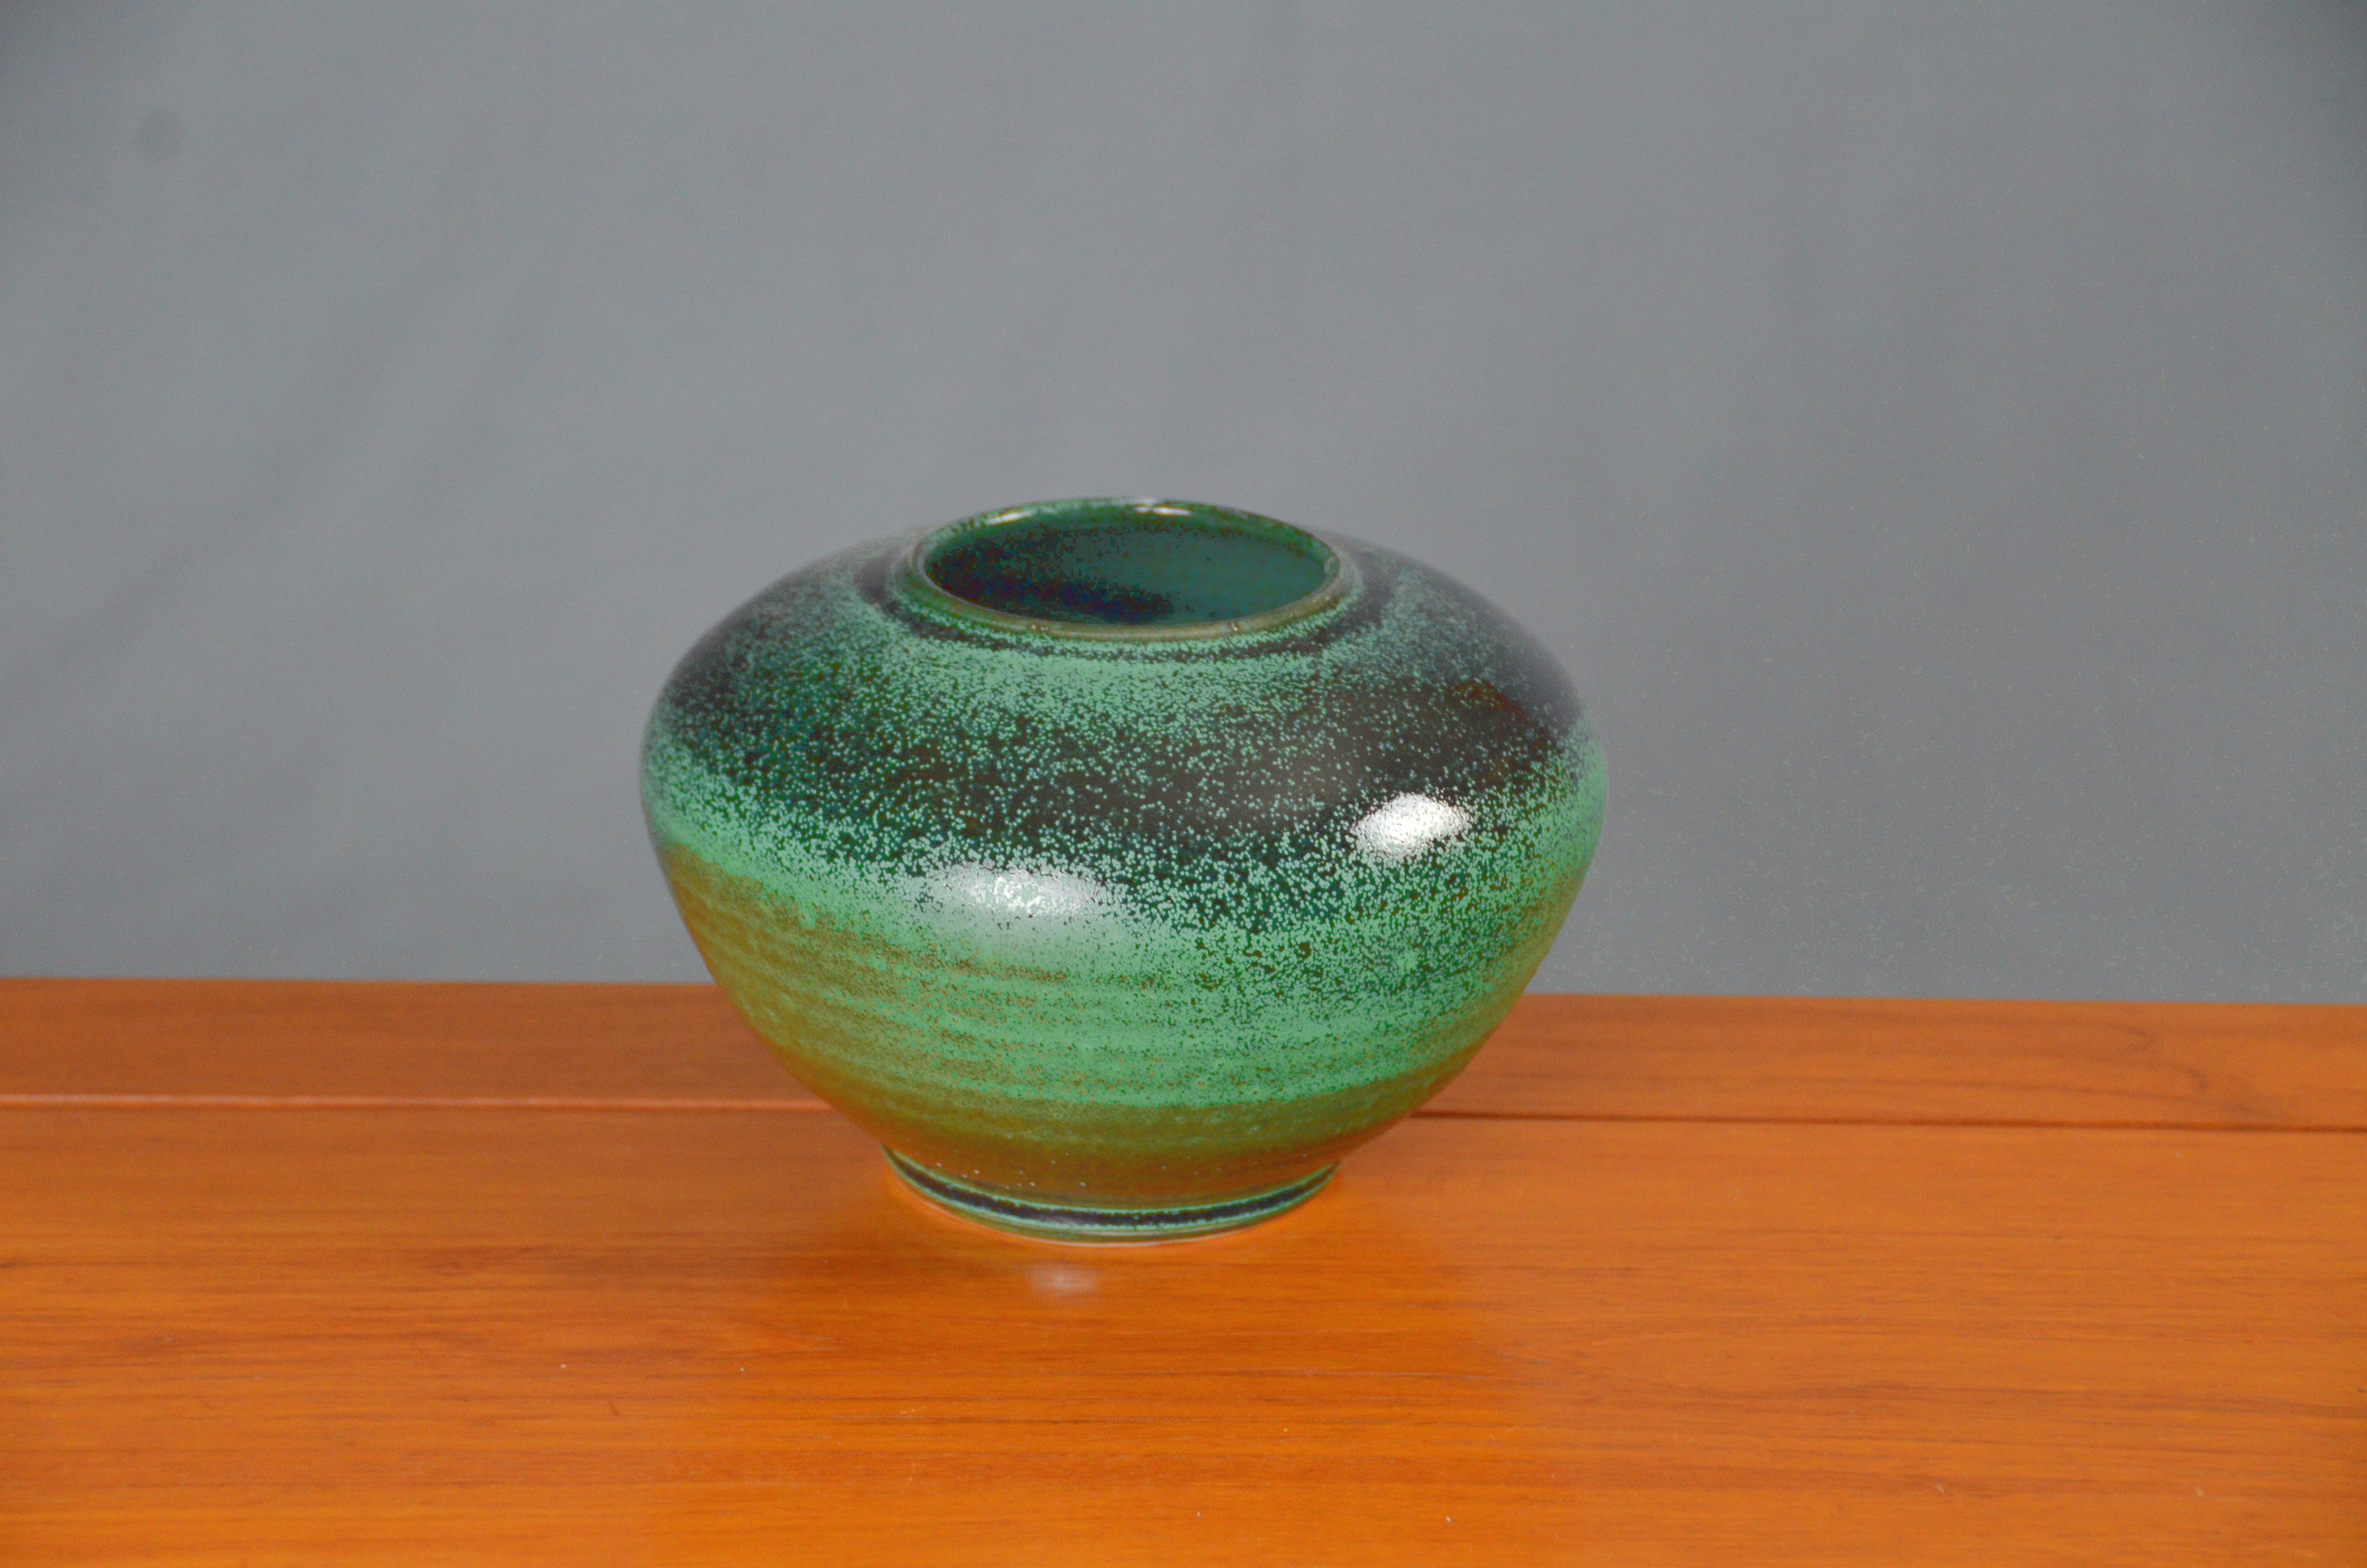 Porcelain Matte Green & Black Vase | Hand thrown porcelain on a potter's wheel.  High Fired, Cone 10, Matte to Black Glaze, Hand Trimmed, Ceramic | Caldwell Pottery